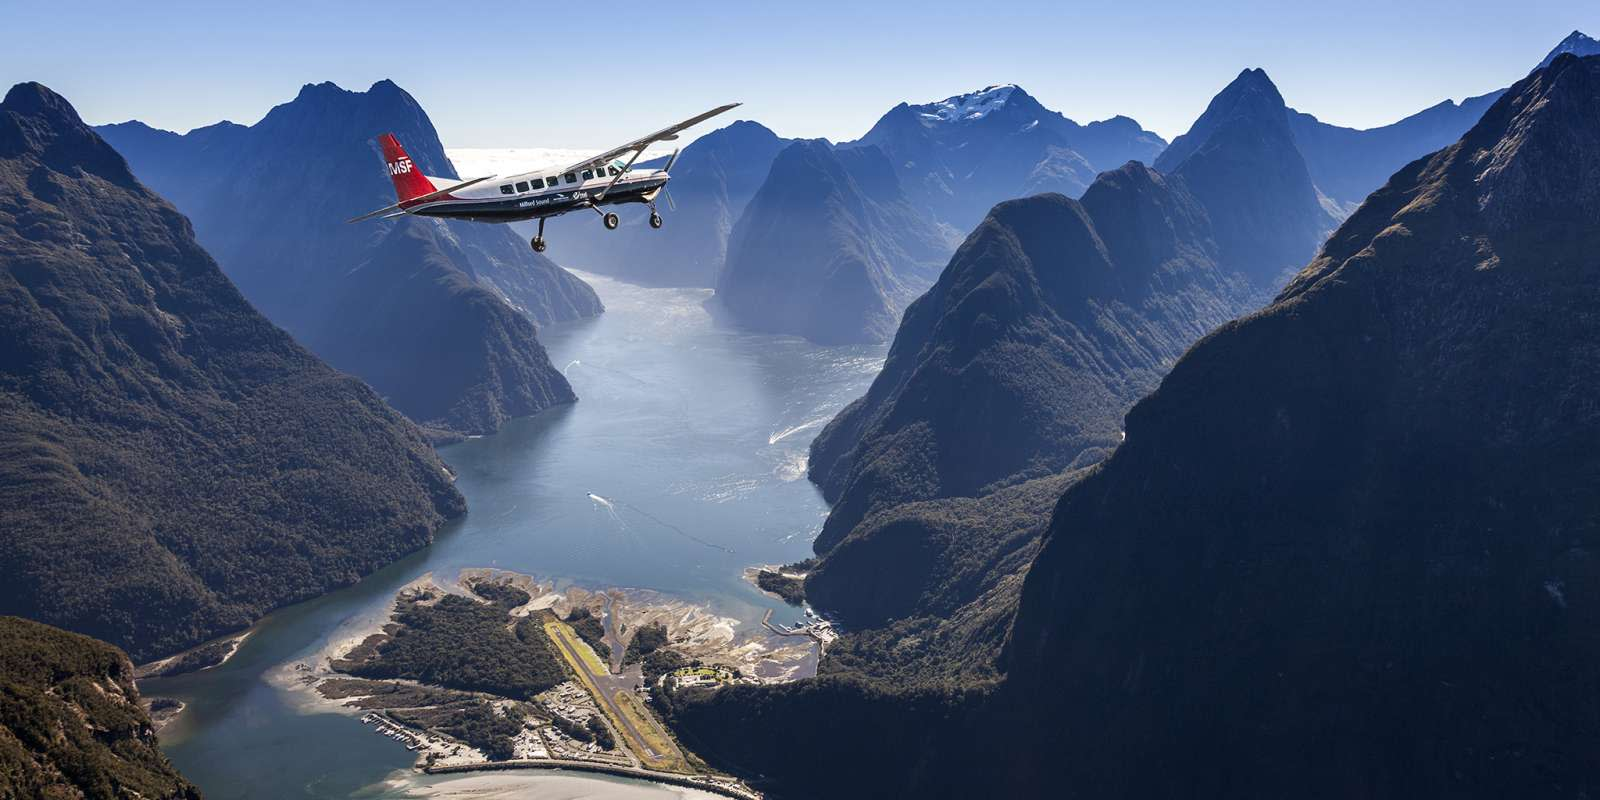 Milford Sound by plane